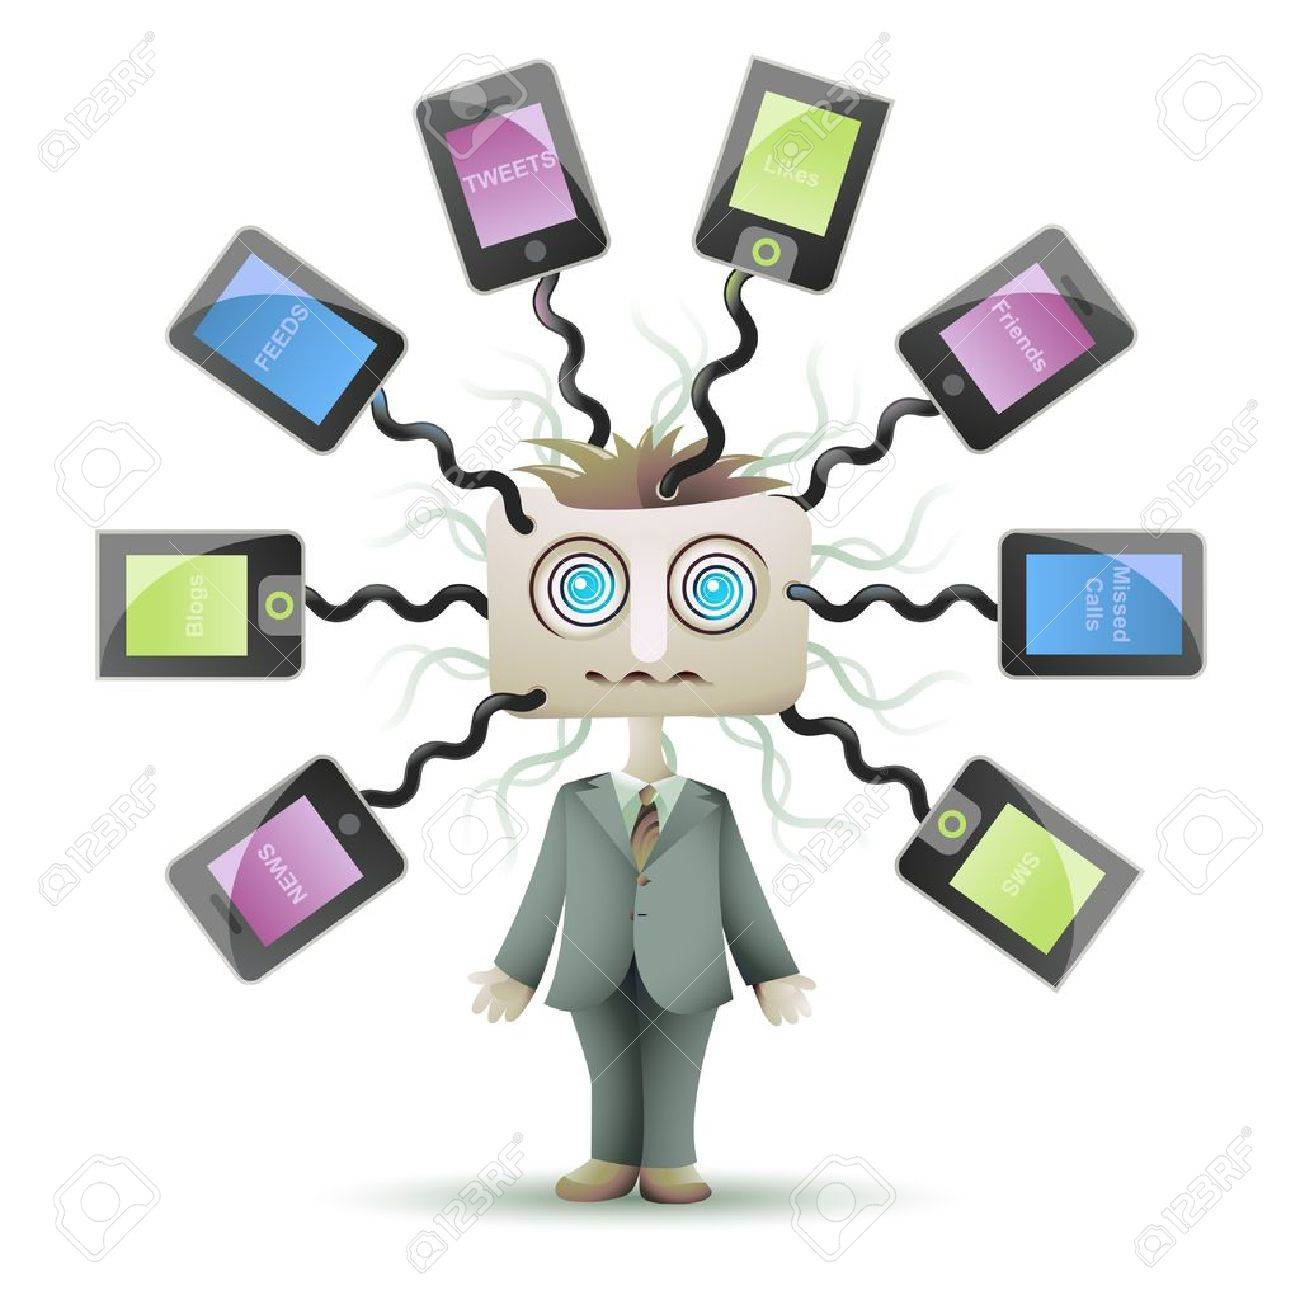 Social networking guy with square head and dizzy eyes, plugged into cyberspace Stock Vector - 14173818